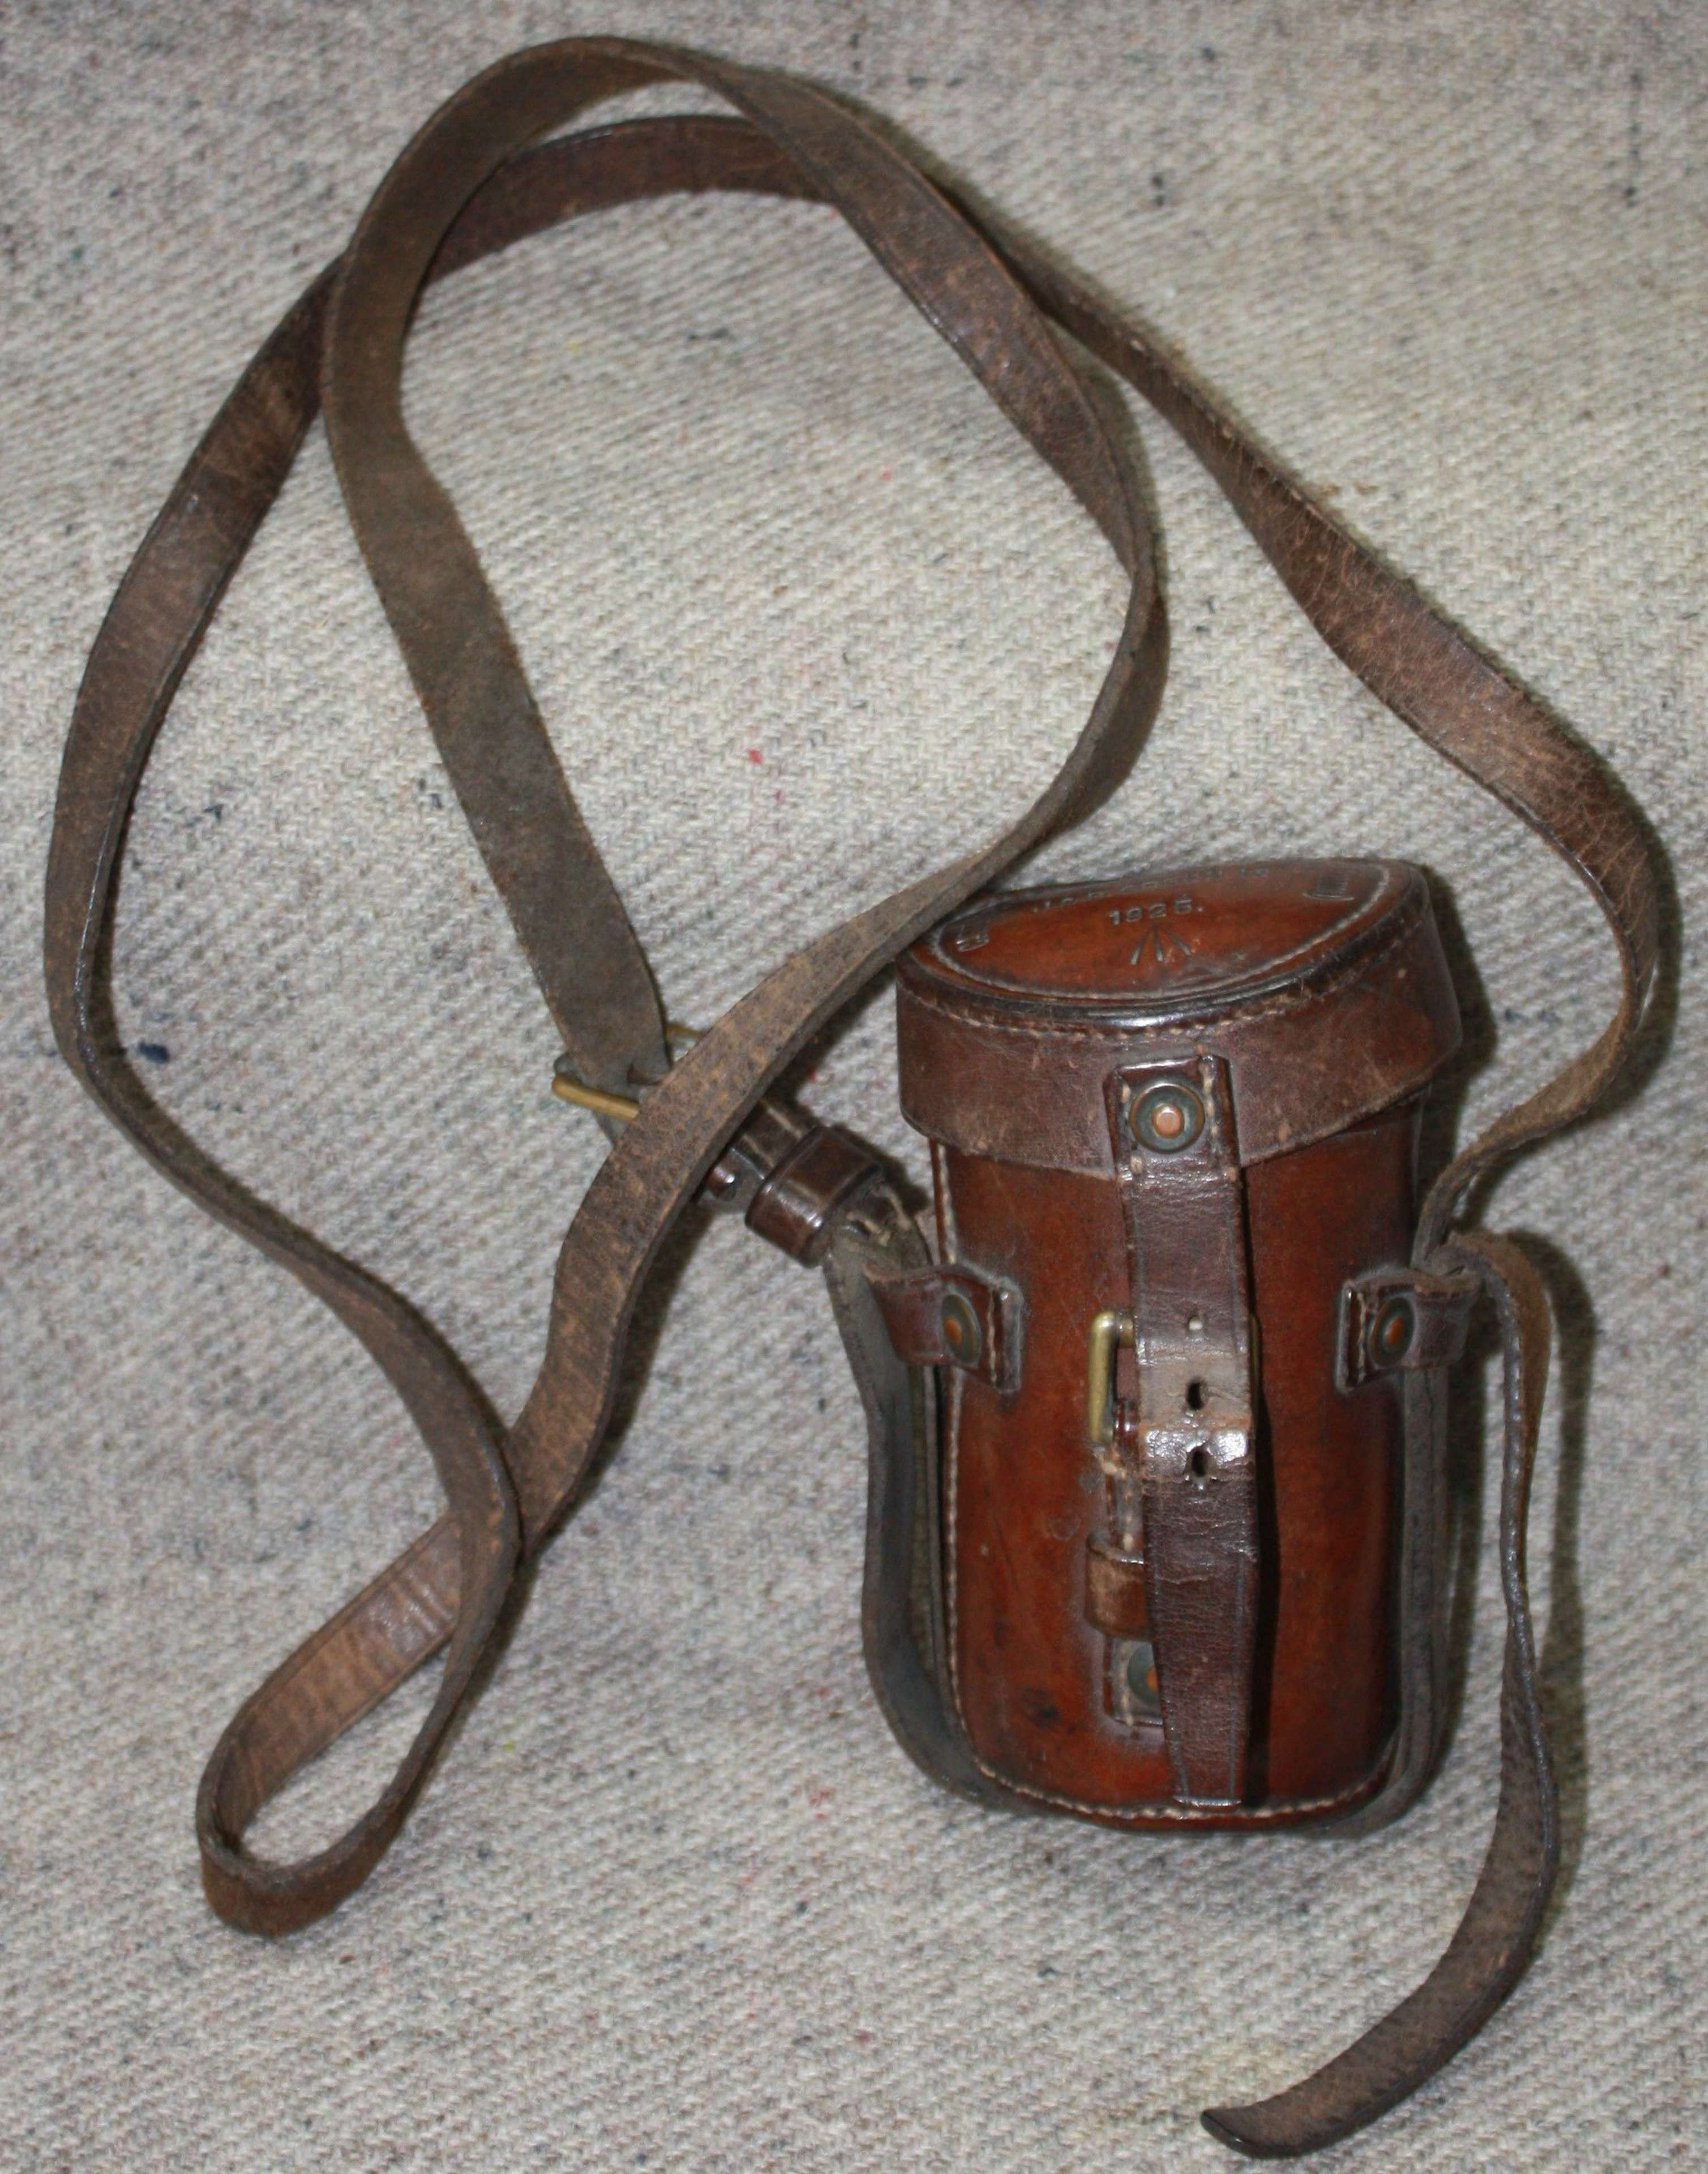 A RARE SMALL SIZE LEATHER MONOCULAR CASE 1925 DATED